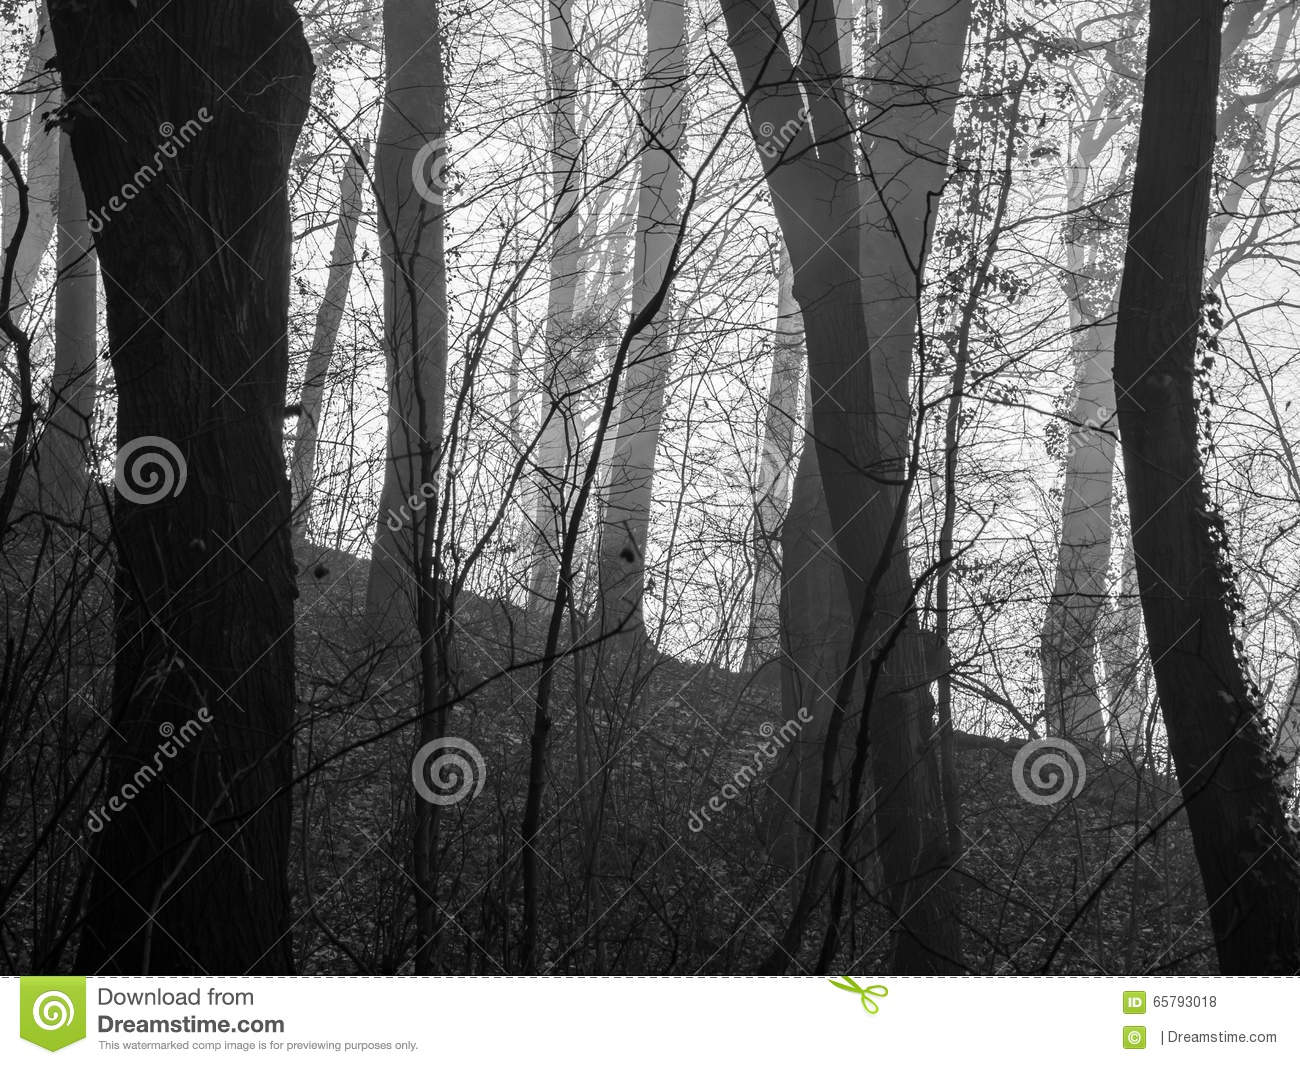 Black And White Misty : Black and white misty spooky forest stock photo image